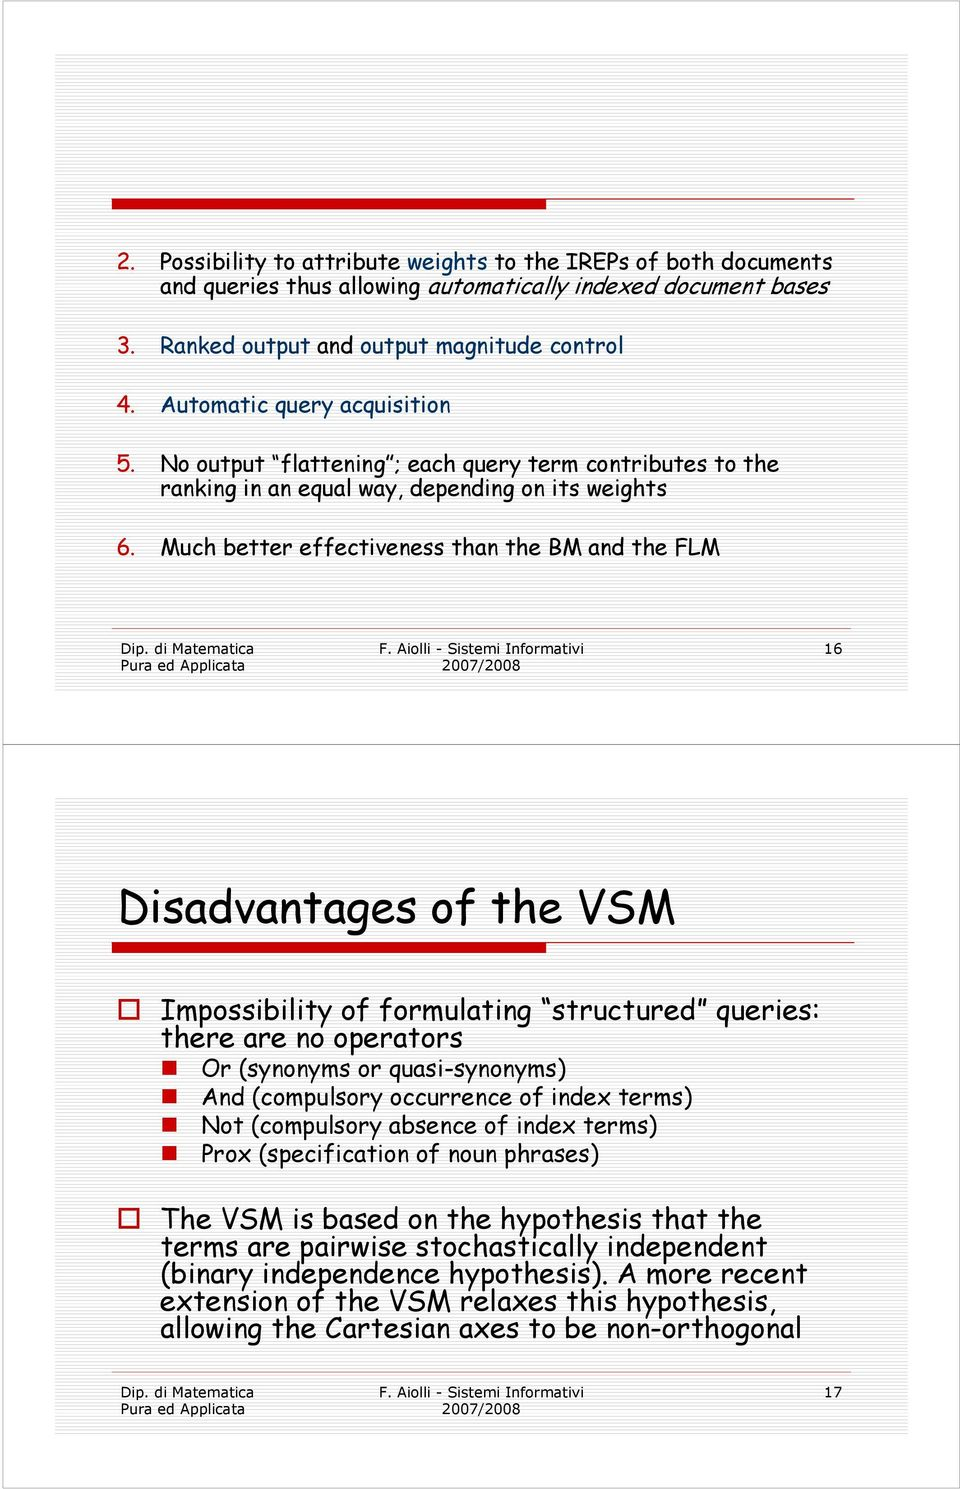 Much better effectiveness than the BM and the FLM 16 Disadvantages of the VSM Impossibility of formulating structured queries: there are no operators Or (synonyms or quasi-synonyms) And (compulsory